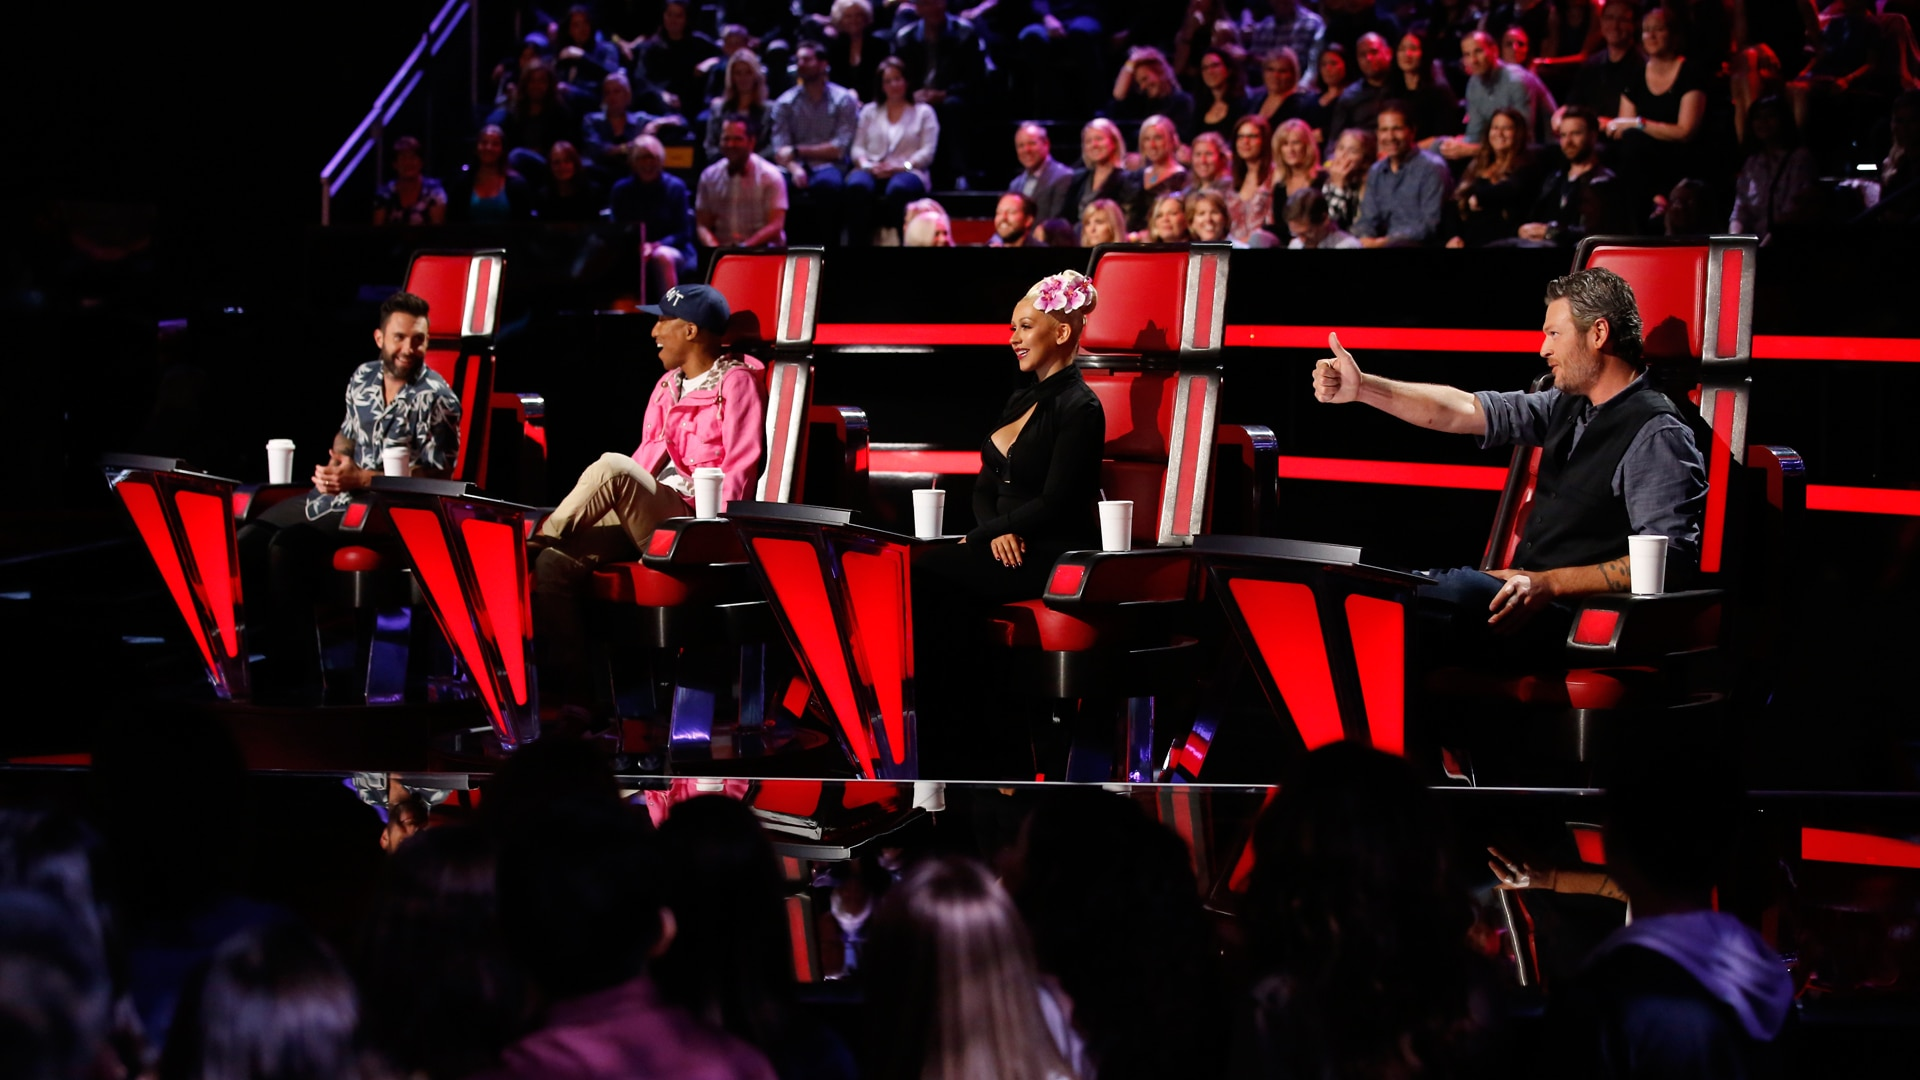 The.Voice.S05E07.HDTV.x264-2HD   DDLValley